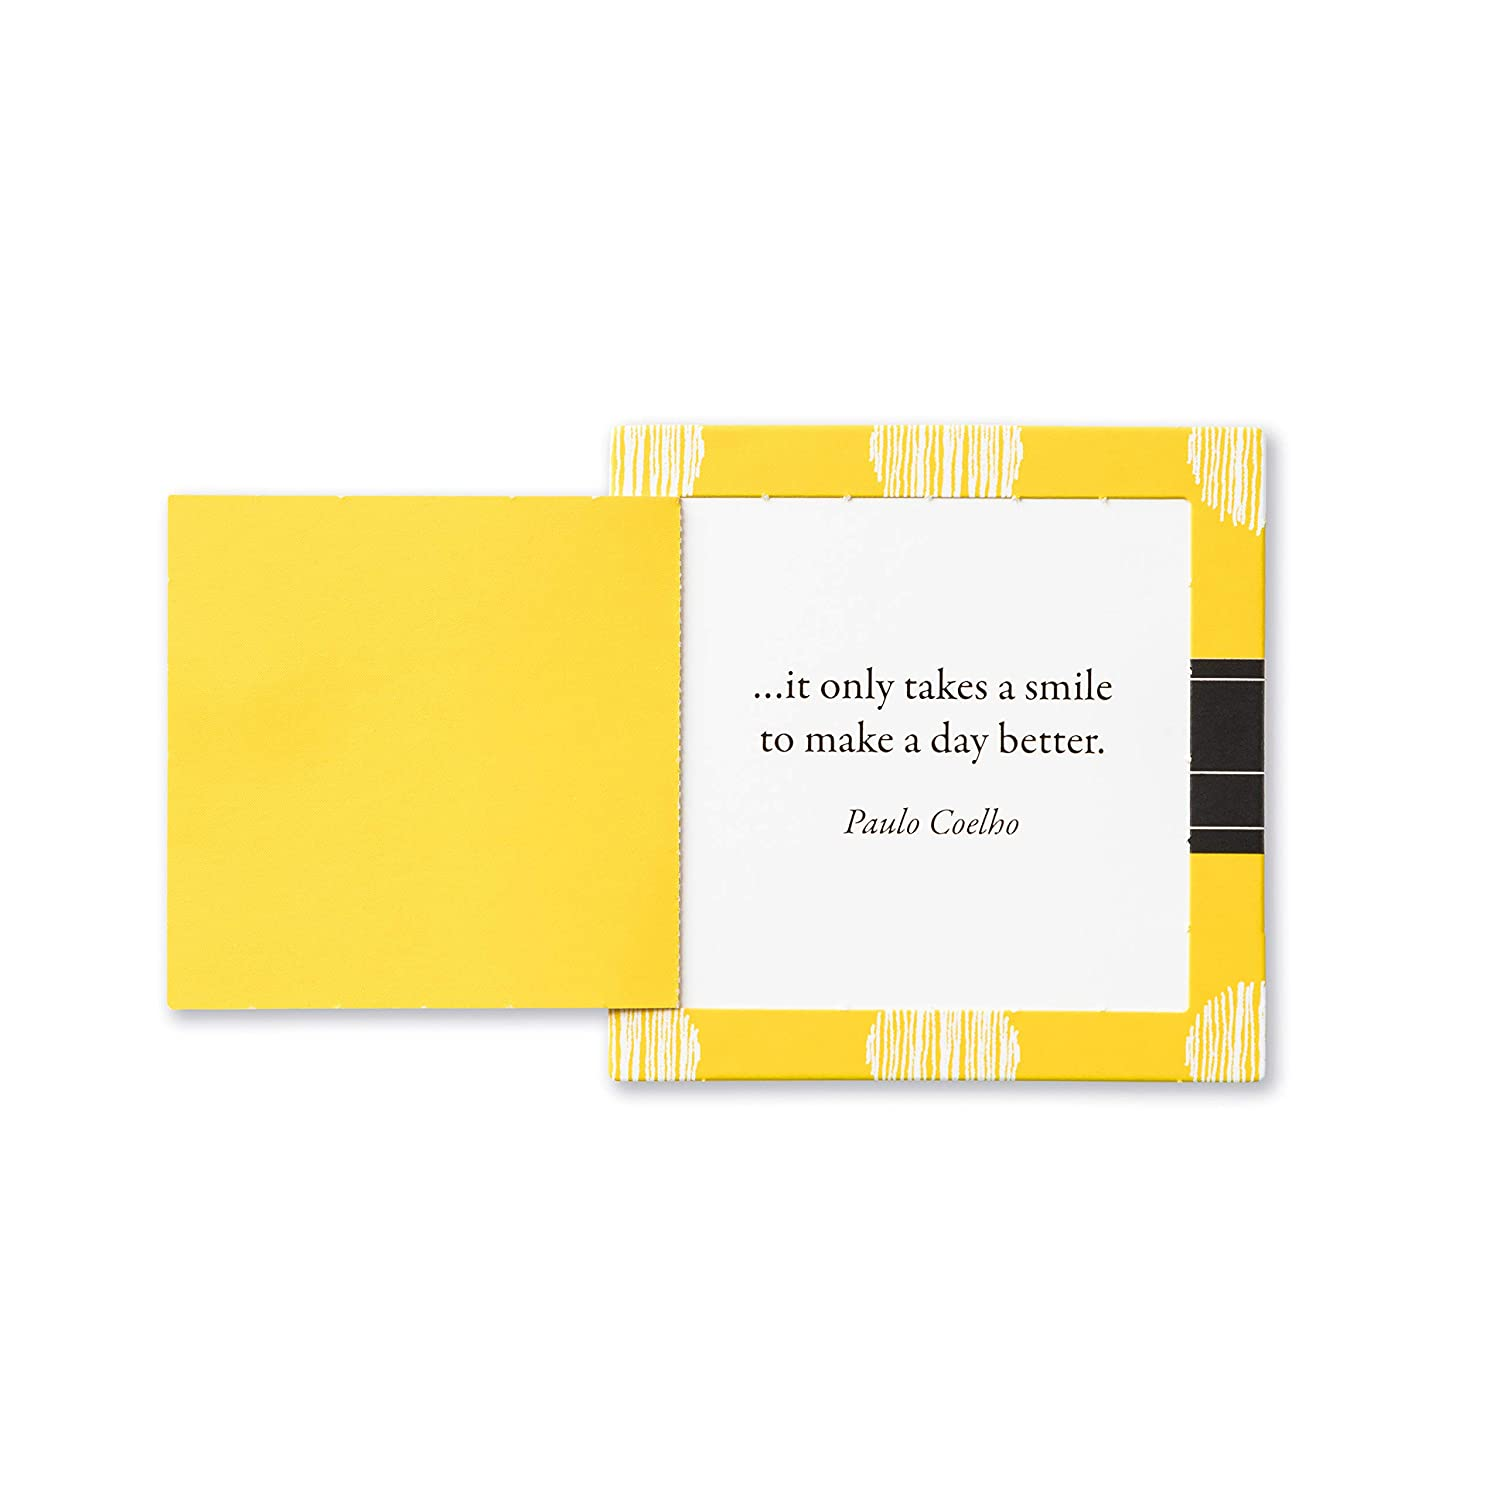 ThoughtFulls Pop-Open Cards by Compendium Youre Awesome /— 30 pop-Open Cards Each with a Different Inspiring Message Inside